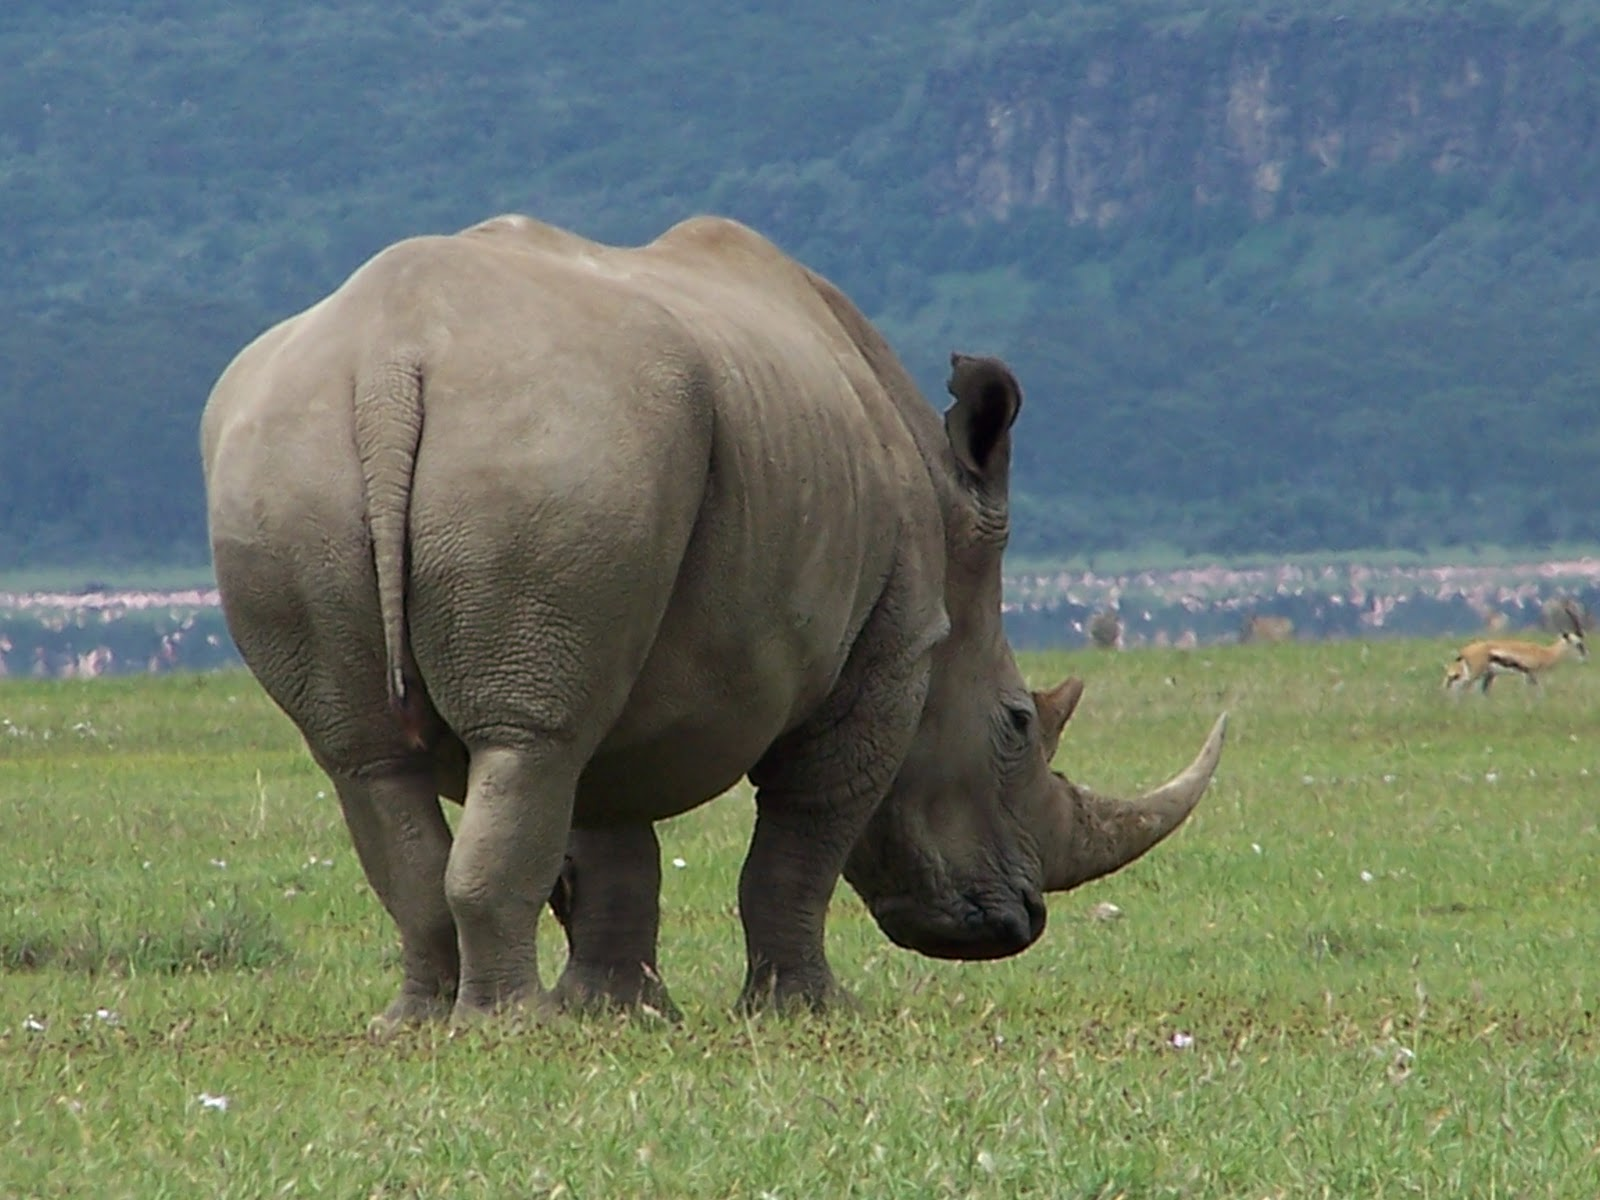 ENCYCLOPEDIA OF ANIMAL FACTS AND PICTURES: RHINOCEROS - photo#25